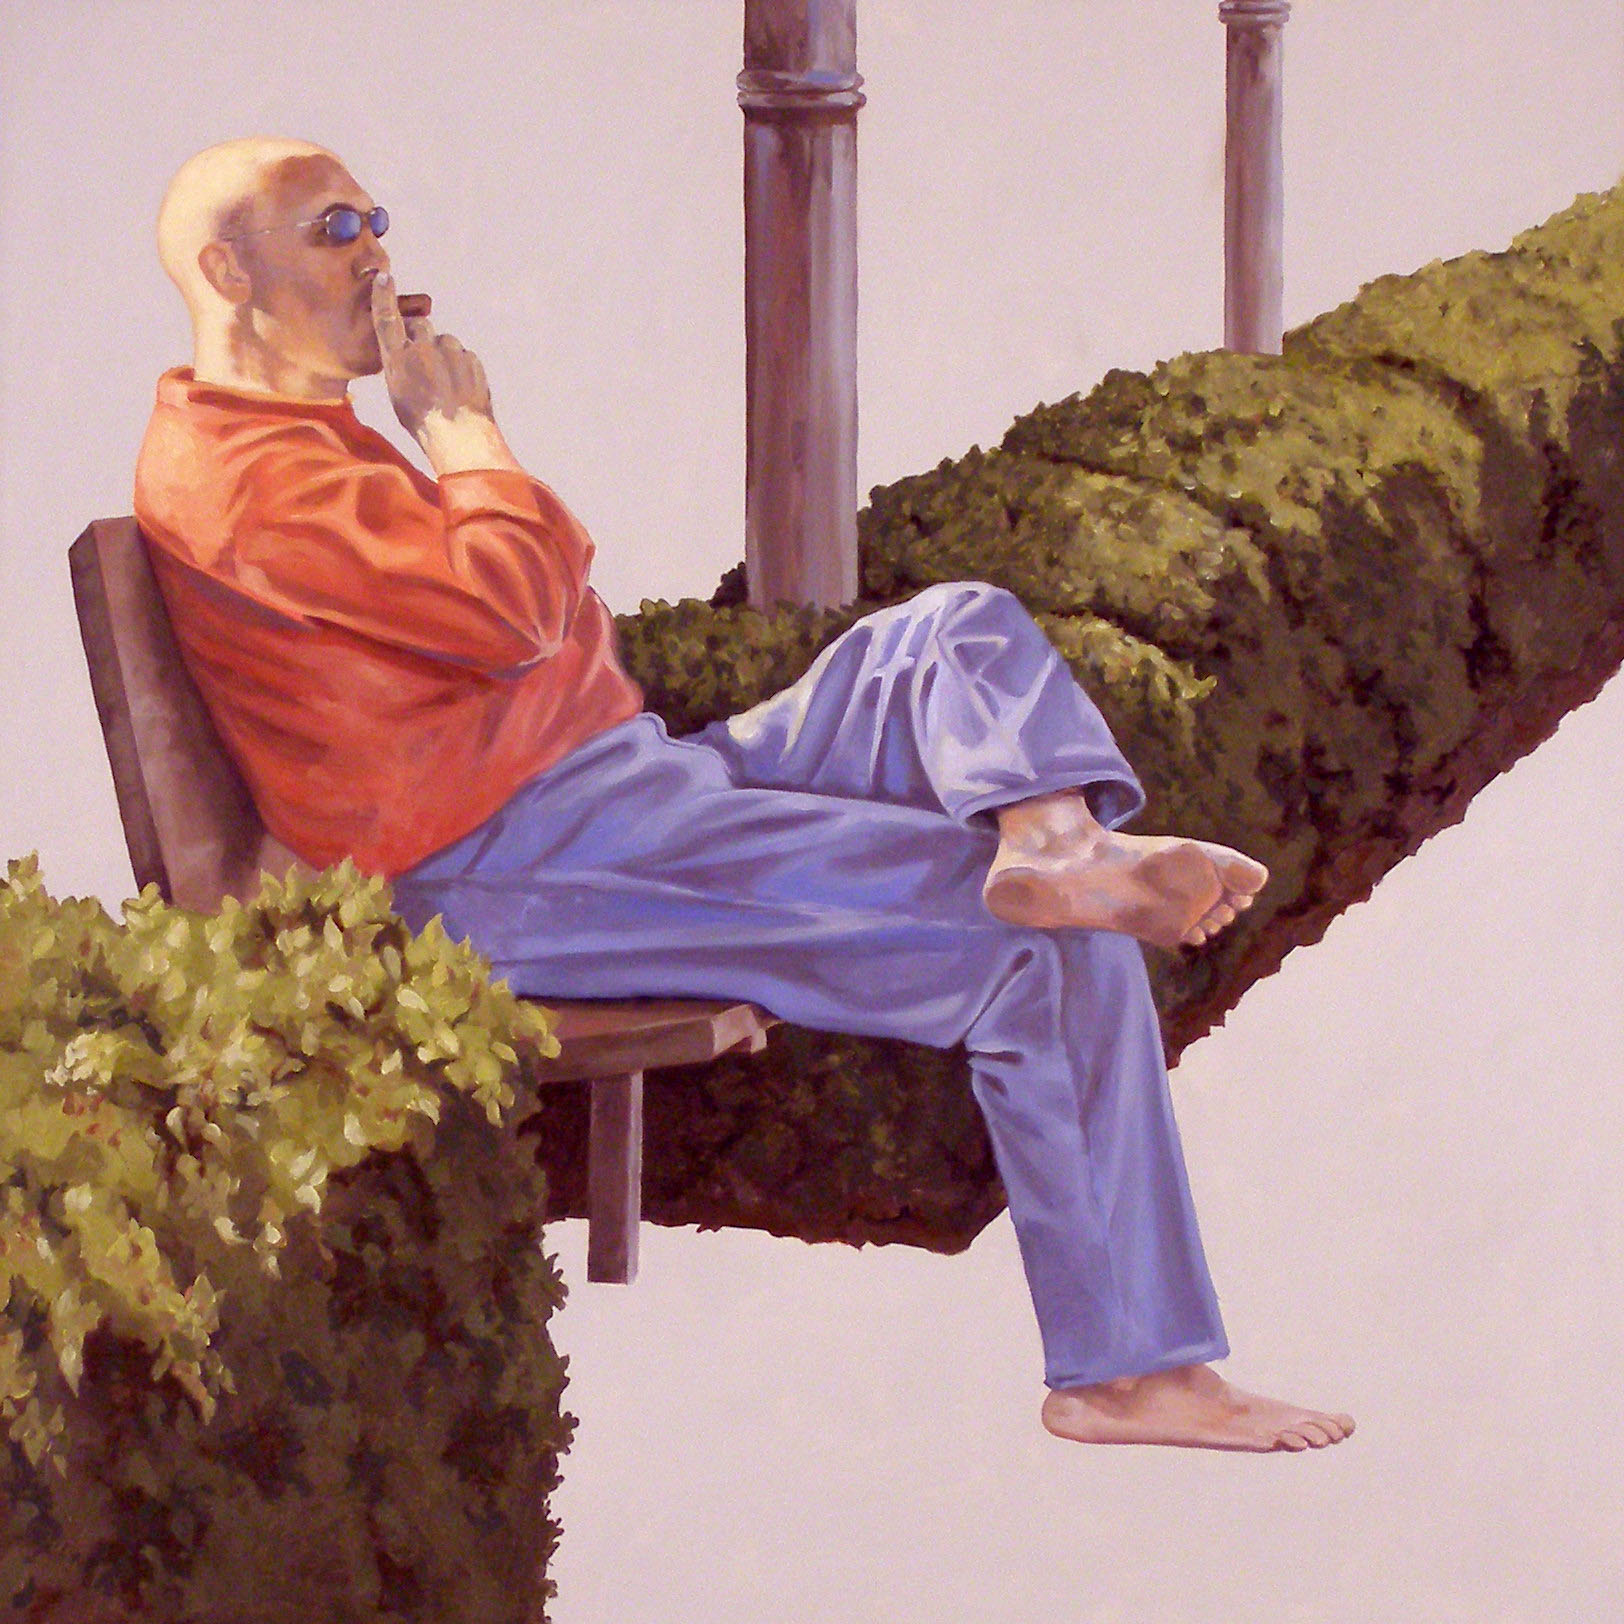 """Alone Together: Barefoot Man, 22""""x 22"""", oil on panel, 2007"""